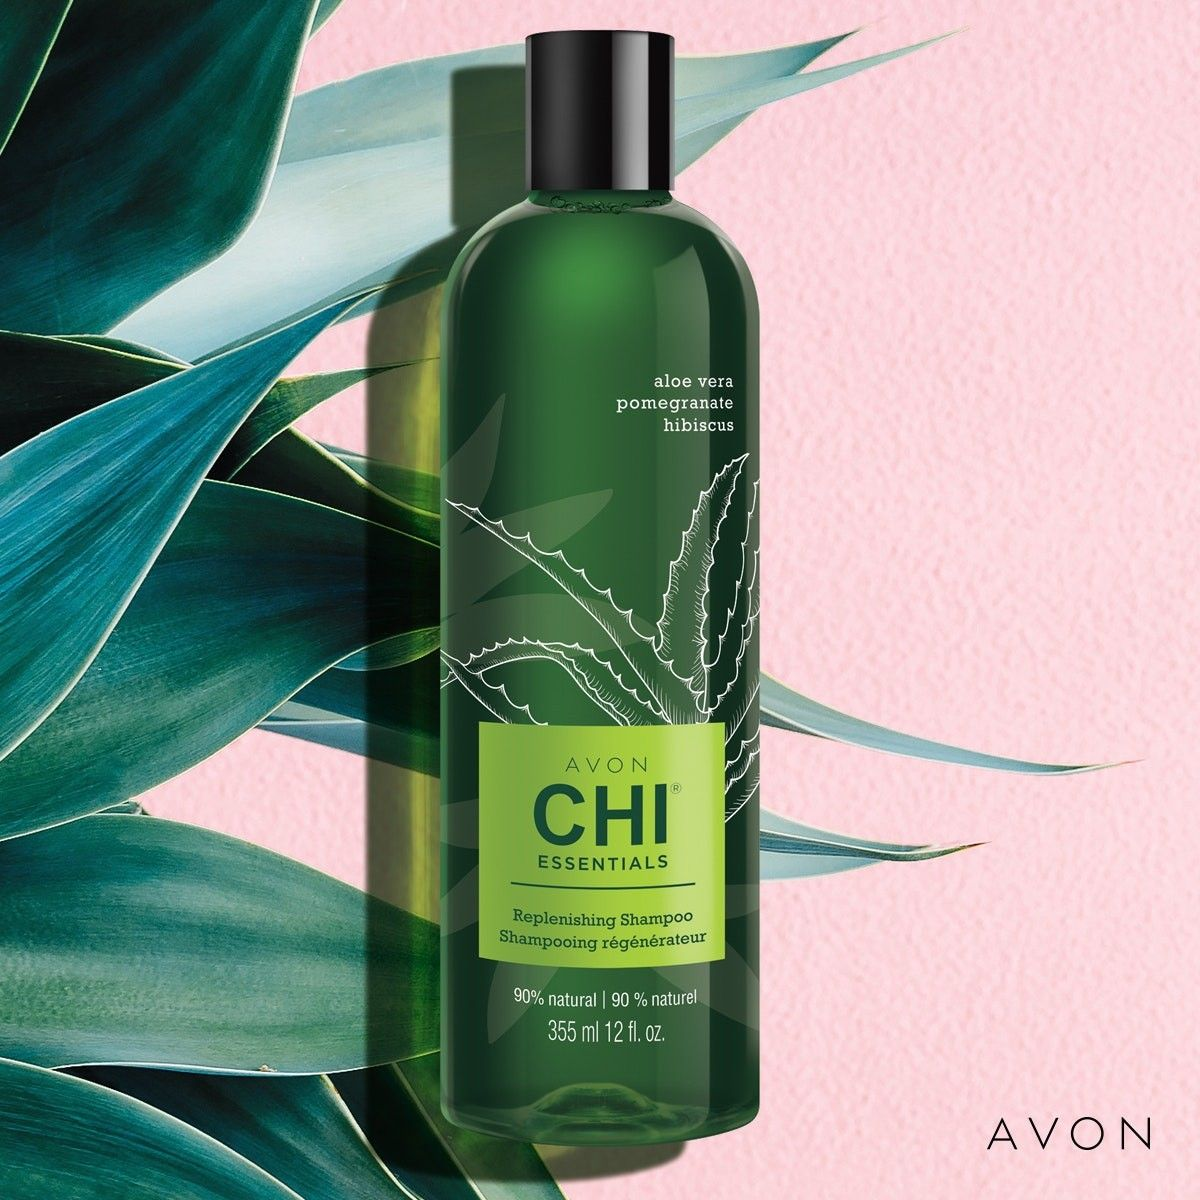 CHI Shampoo in 2020 Shampoo, Hair care products